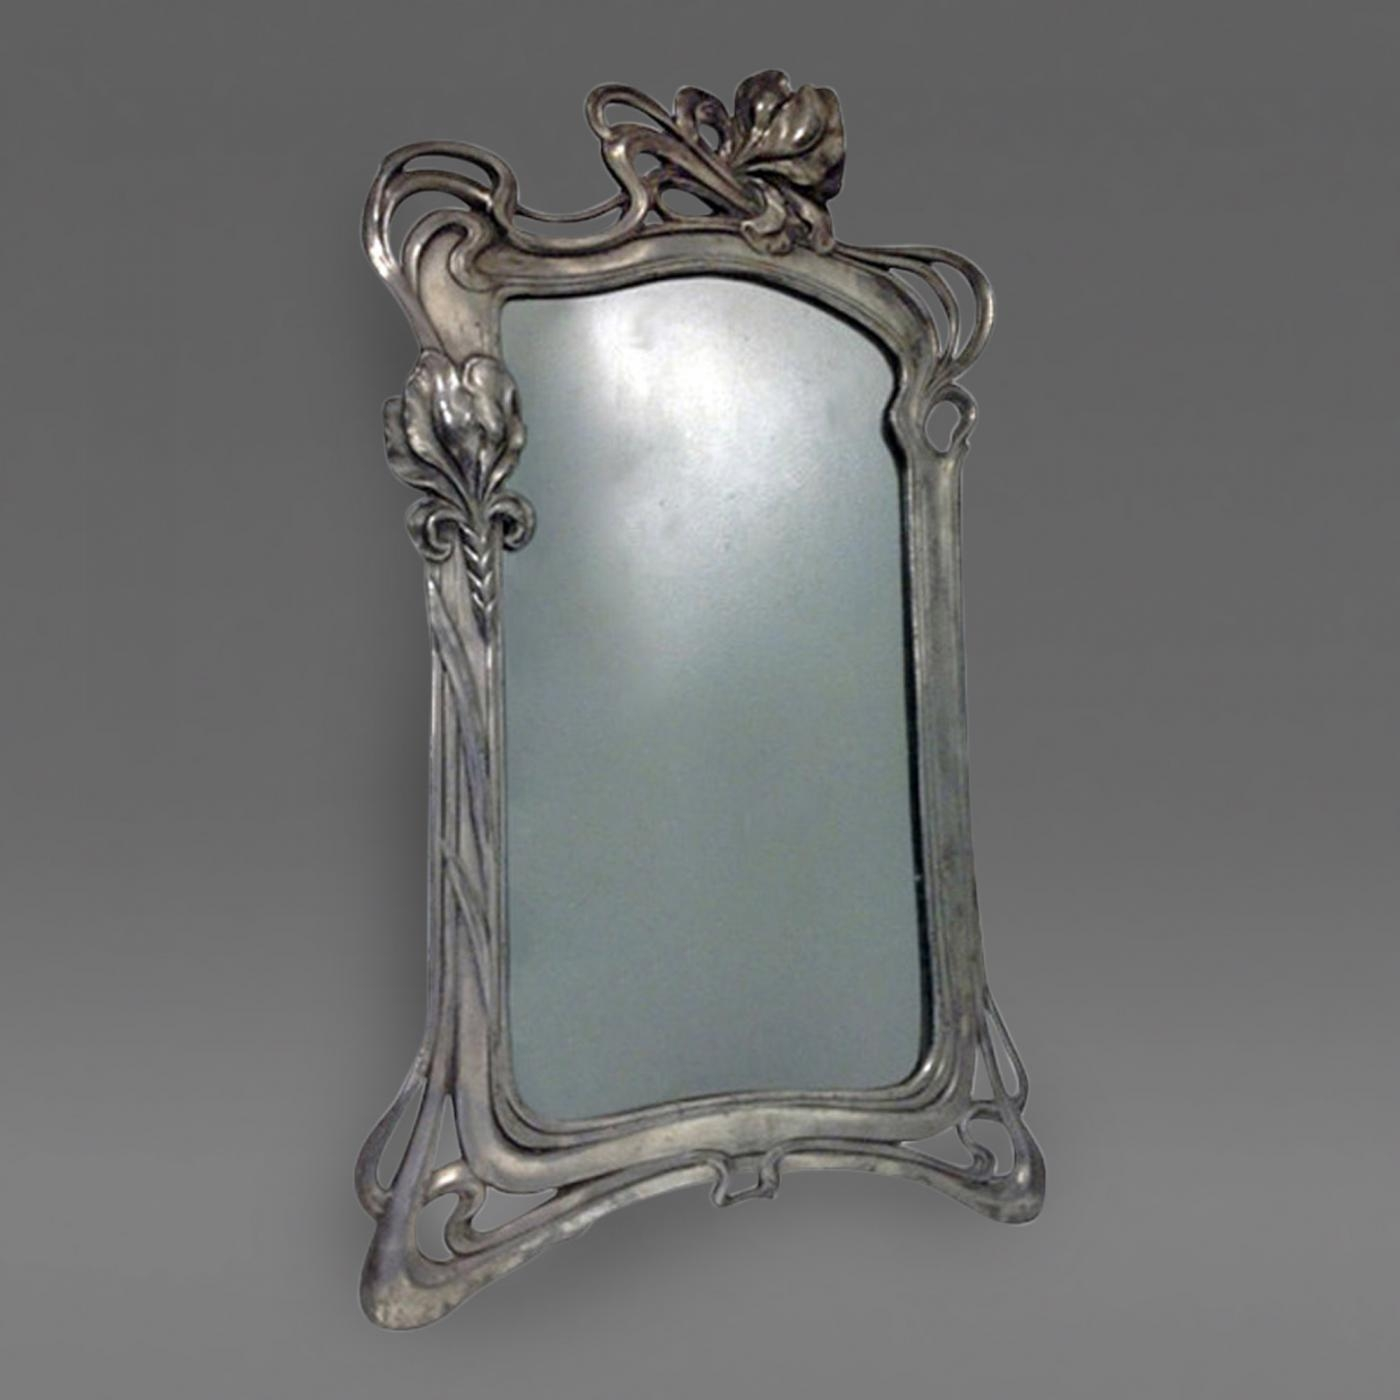 Art Nouveau Mirror Argentor C1900 Within Art Nouveau Mirrors (View 12 of 15)